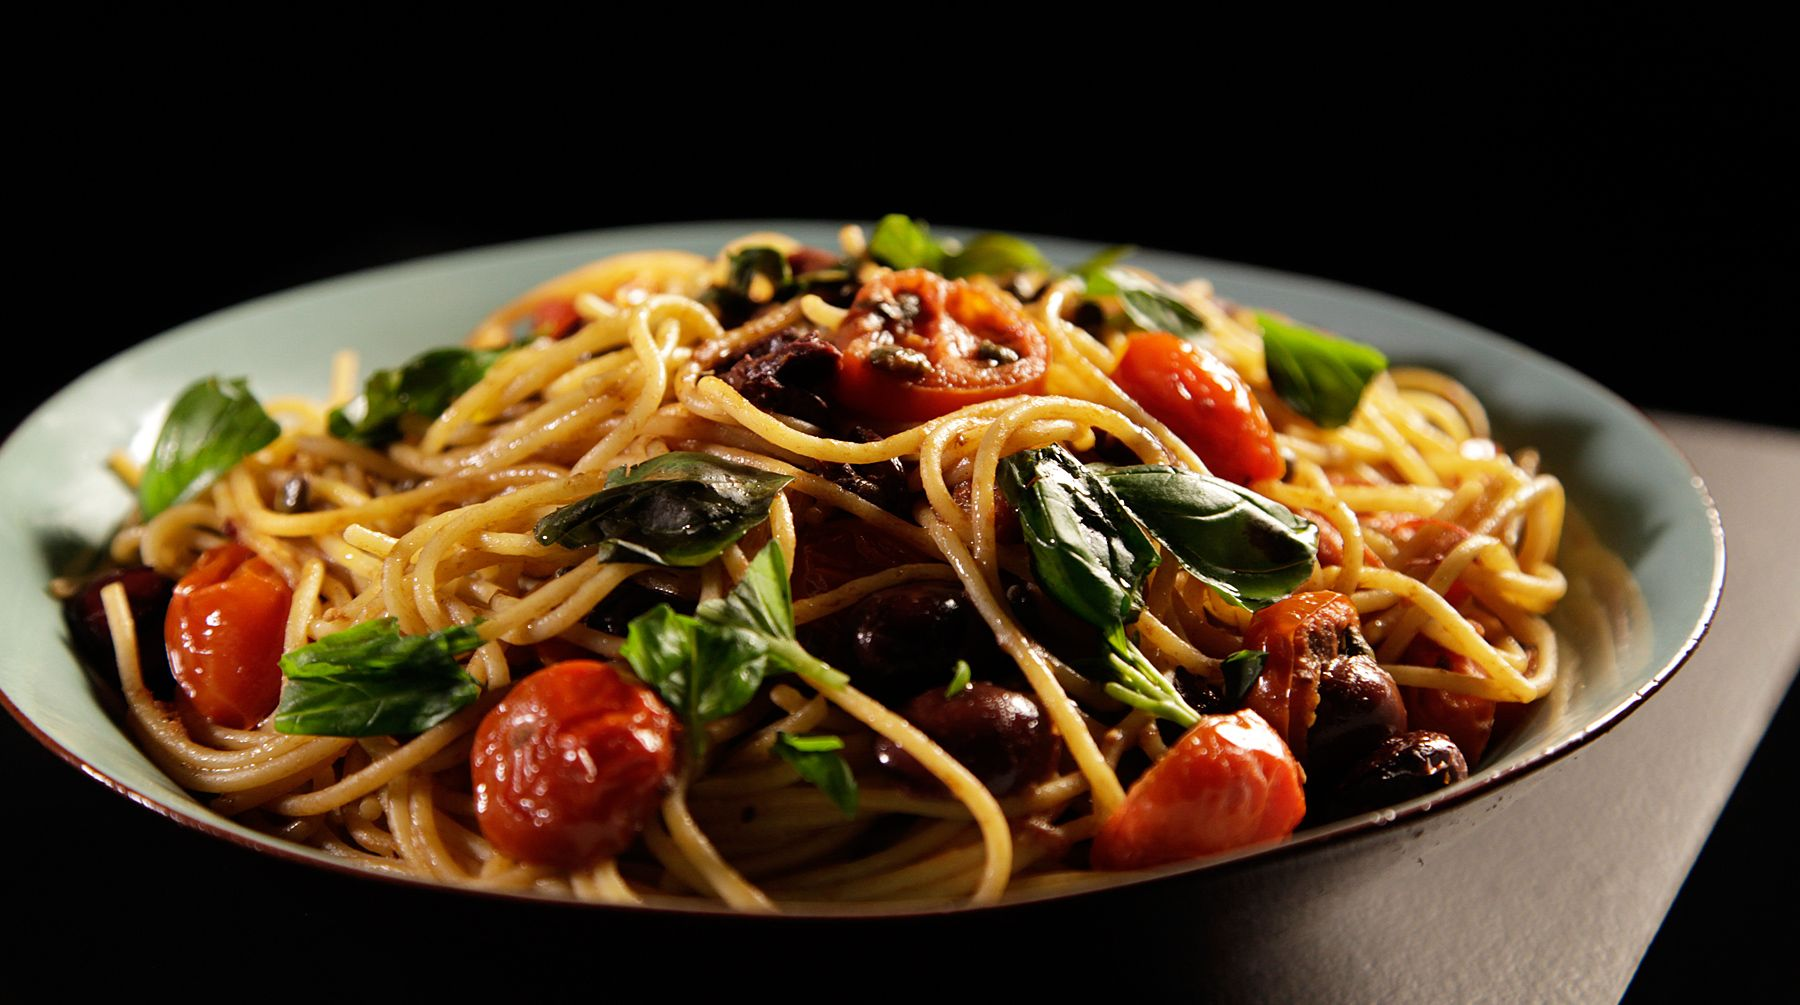 Get this pasta recipe by gordon ramsay from gordon ramsays ultimate recipes from gordon ramsays ultimate cookery course on asian food channel forumfinder Image collections